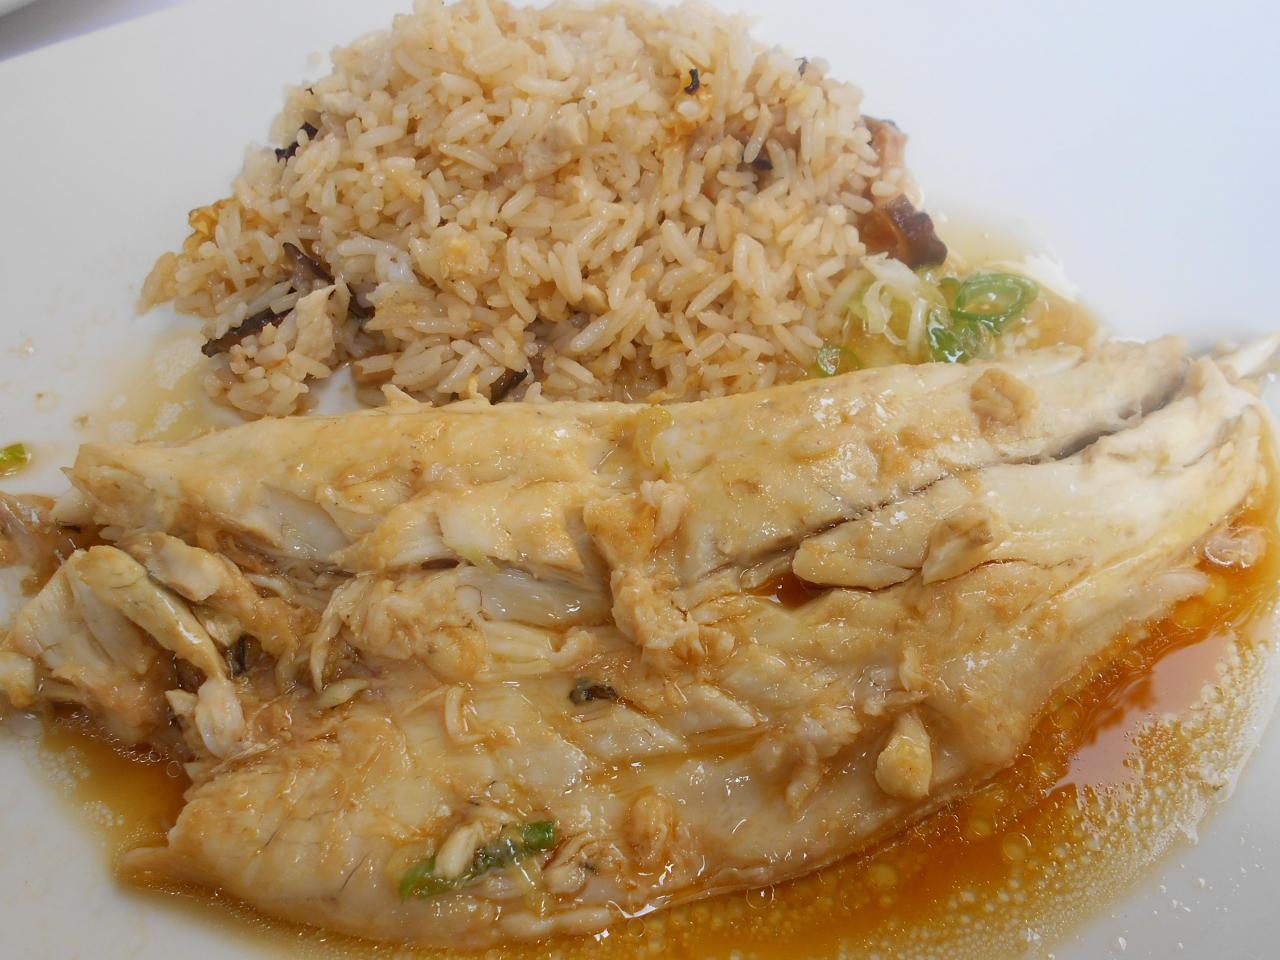 The sea bass fillet and the lotus-steamed rice